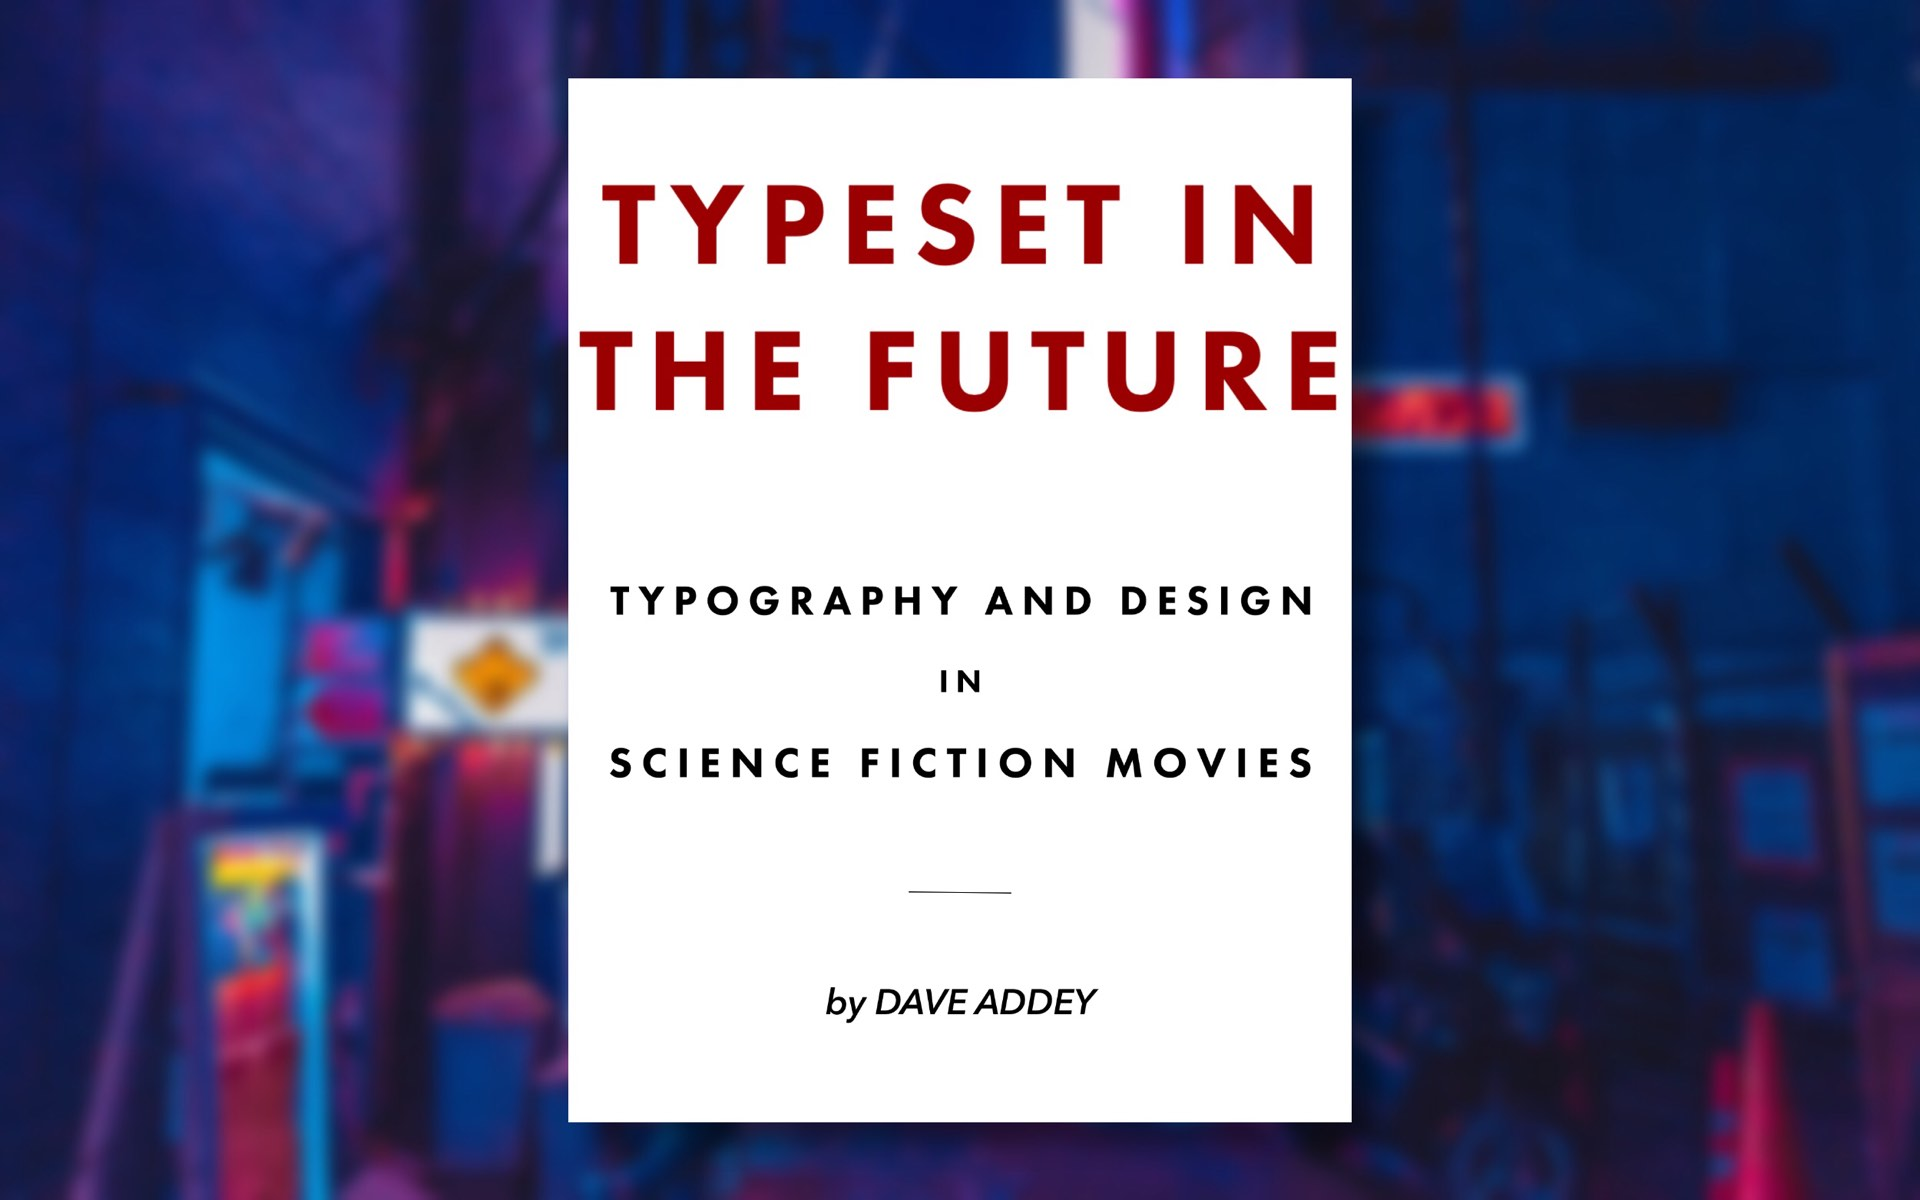 pre-order-the-typeset-in-the-future-book-by-dave-addey